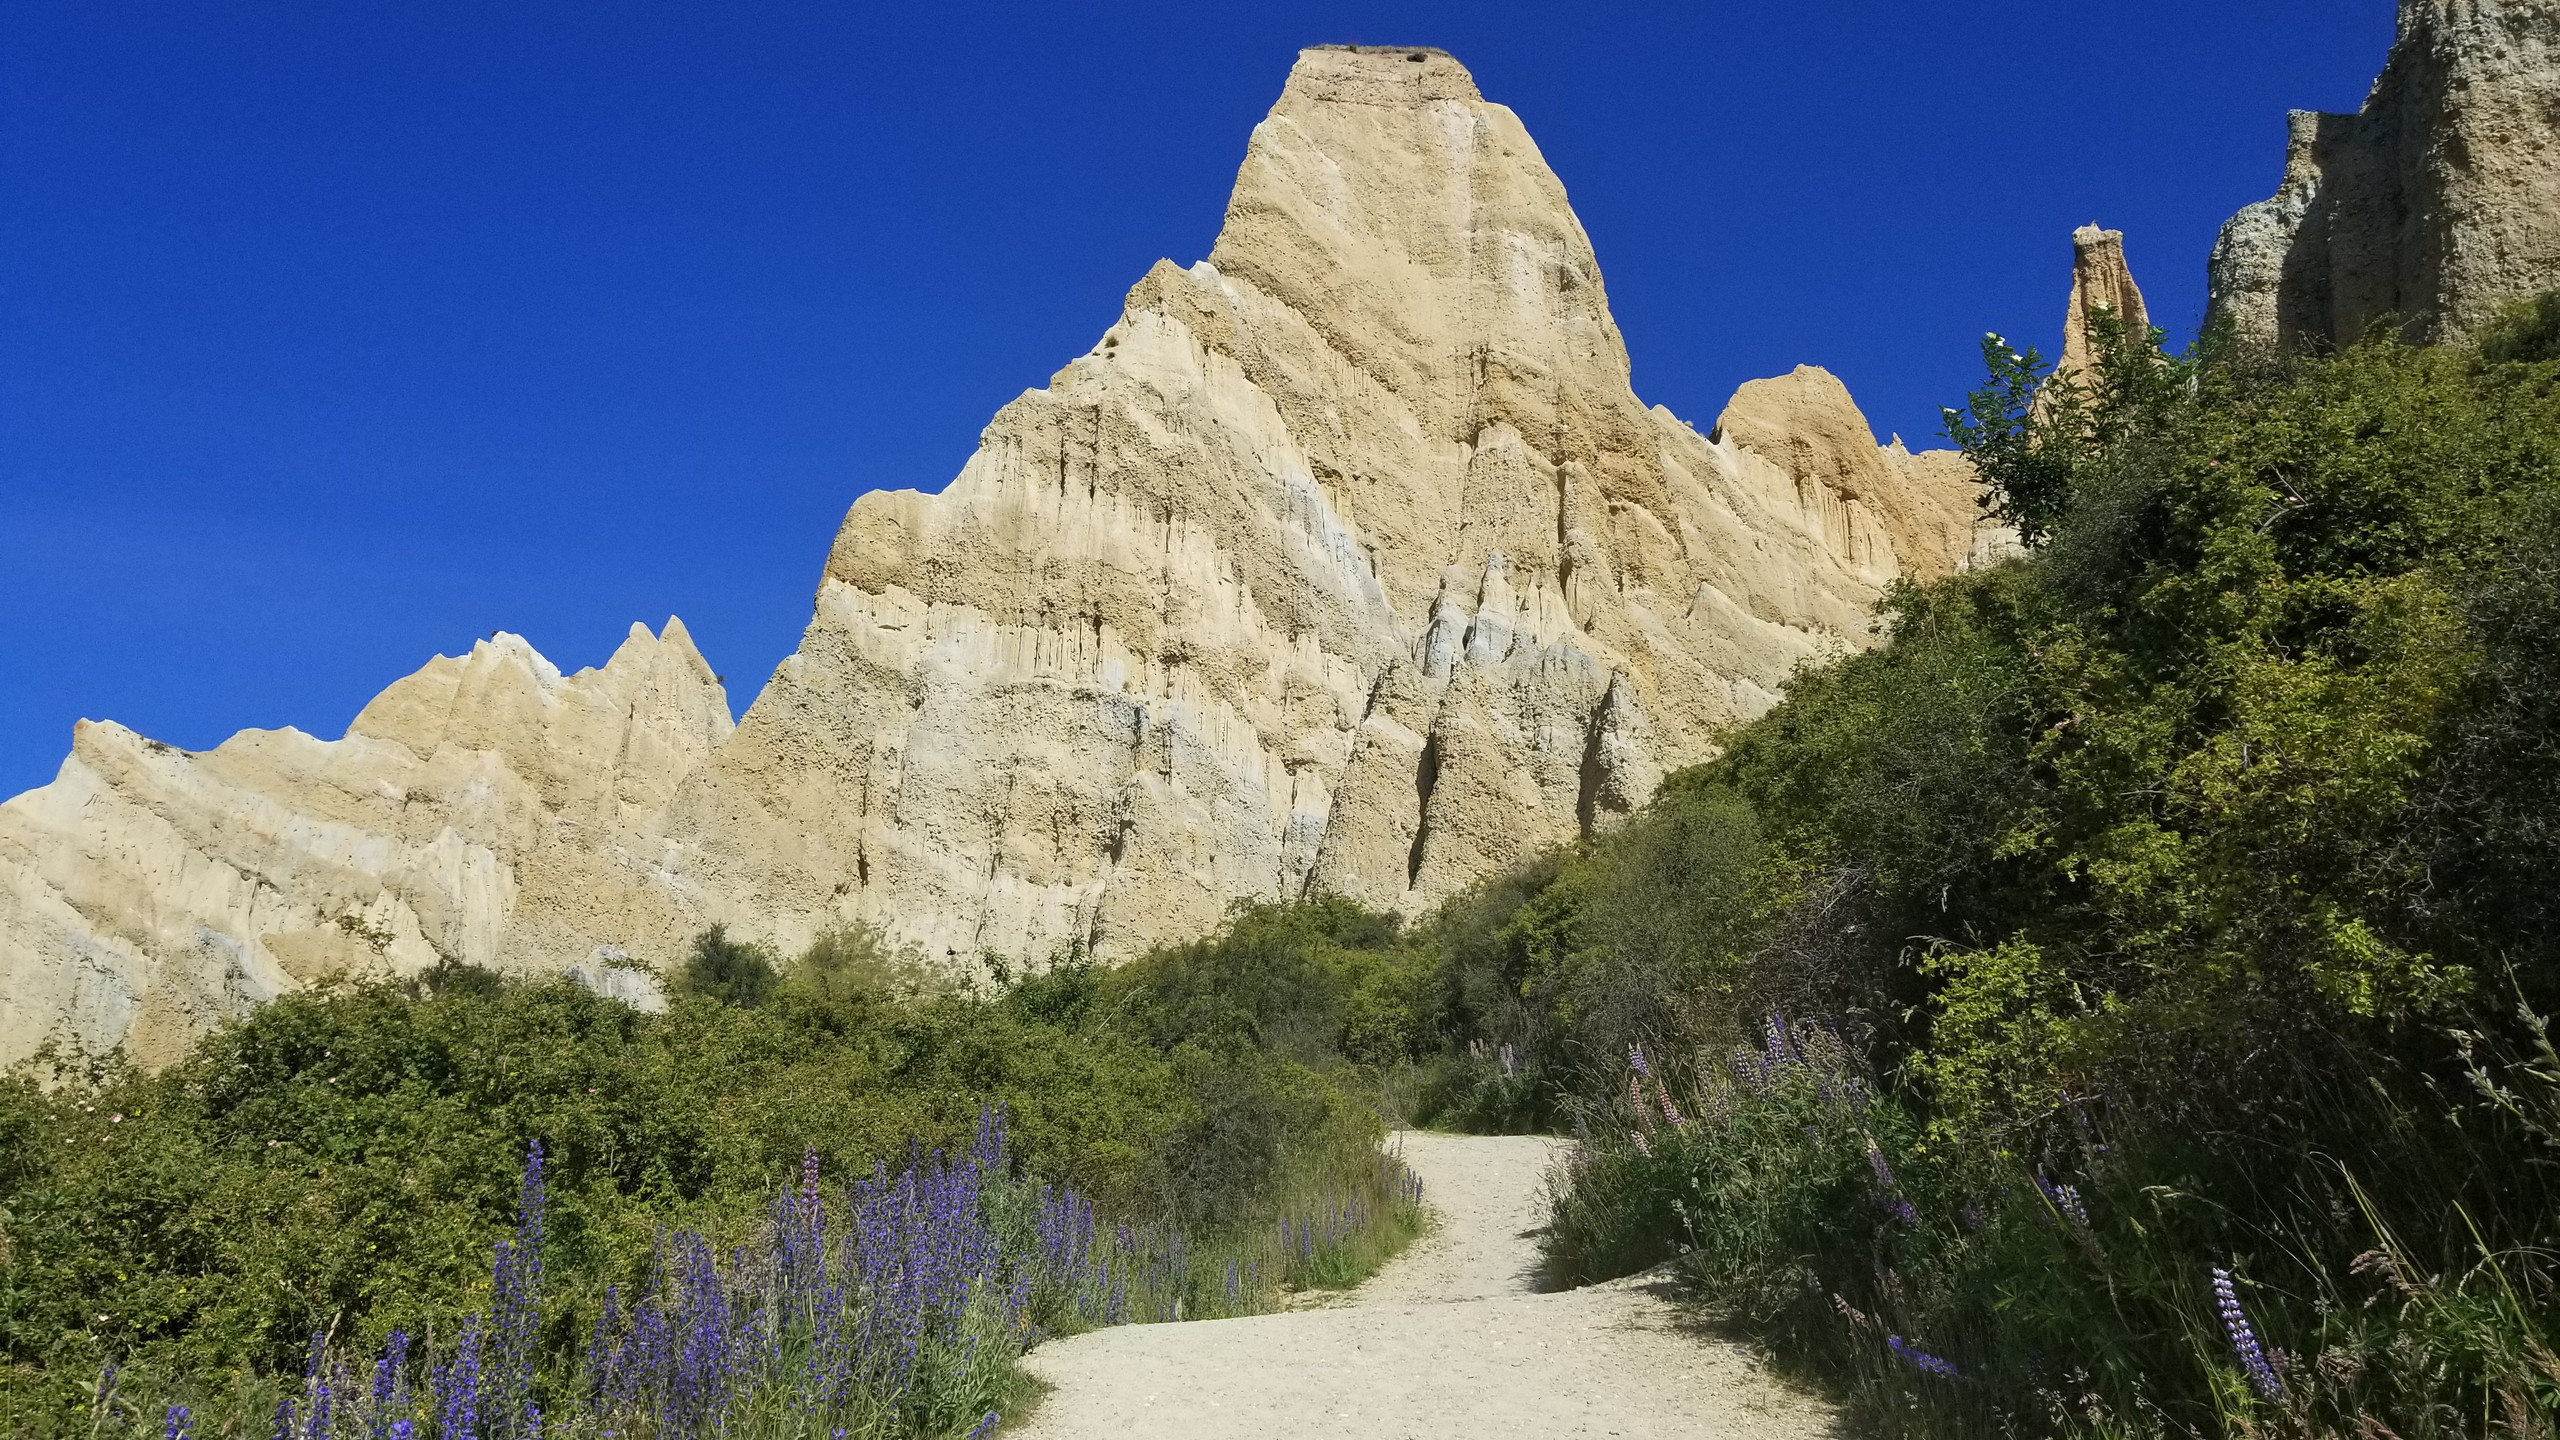 Clay Cliffs, New Zealand attractions, New Zealand activities, what to visit in New Zealand